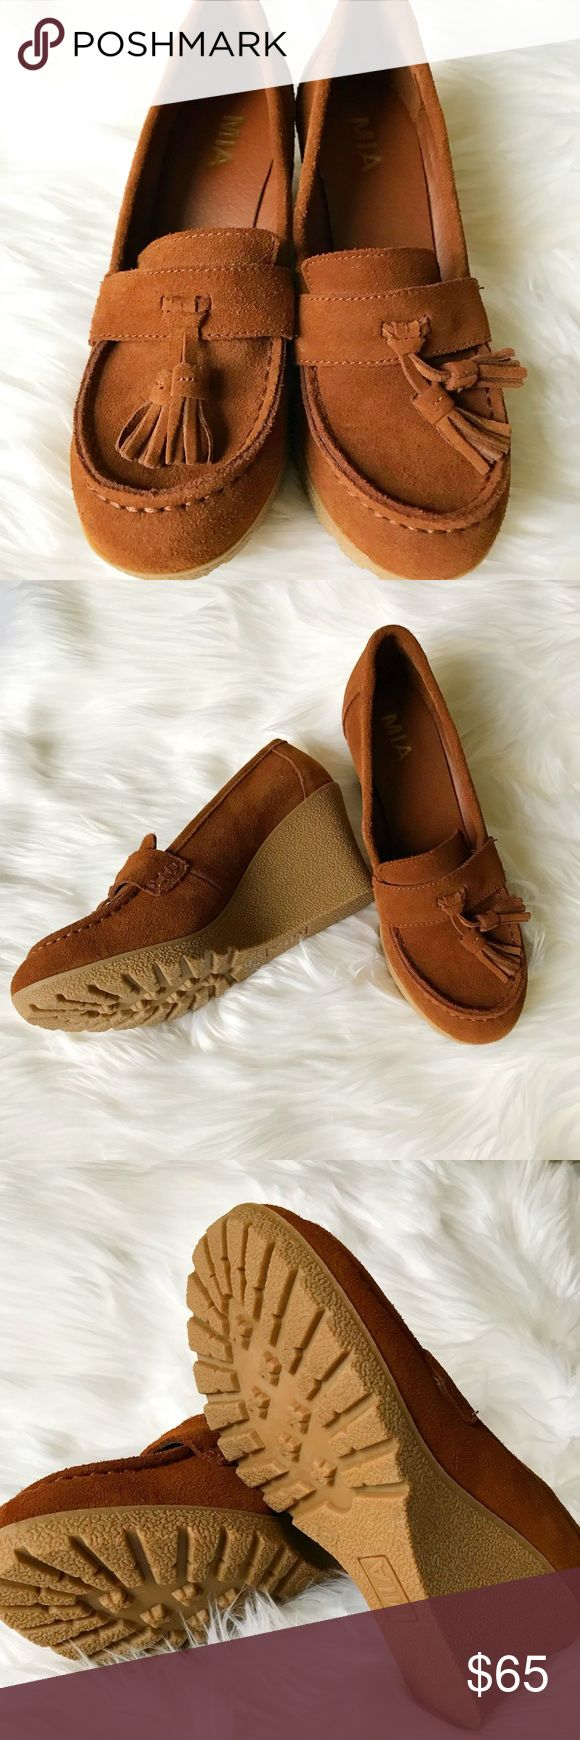 """MIA SUEDE LOAFER PUMPS MIA SUEDE TASSEL WEDGE LOAFER size 8  New! Without box 👠👠 gorgeous rust color.  Comfy suede wedge loafers flaunt a tassel accent Man-made heel, 3"""" (76mm) Platform, 0.5"""" (13mm) Compares to a 2.5"""" (64mm) heel Round toe Suede upper Slip-on style Polyurethane lining Man-made sole Padded insole MSRP $175 Mia Shoes"""